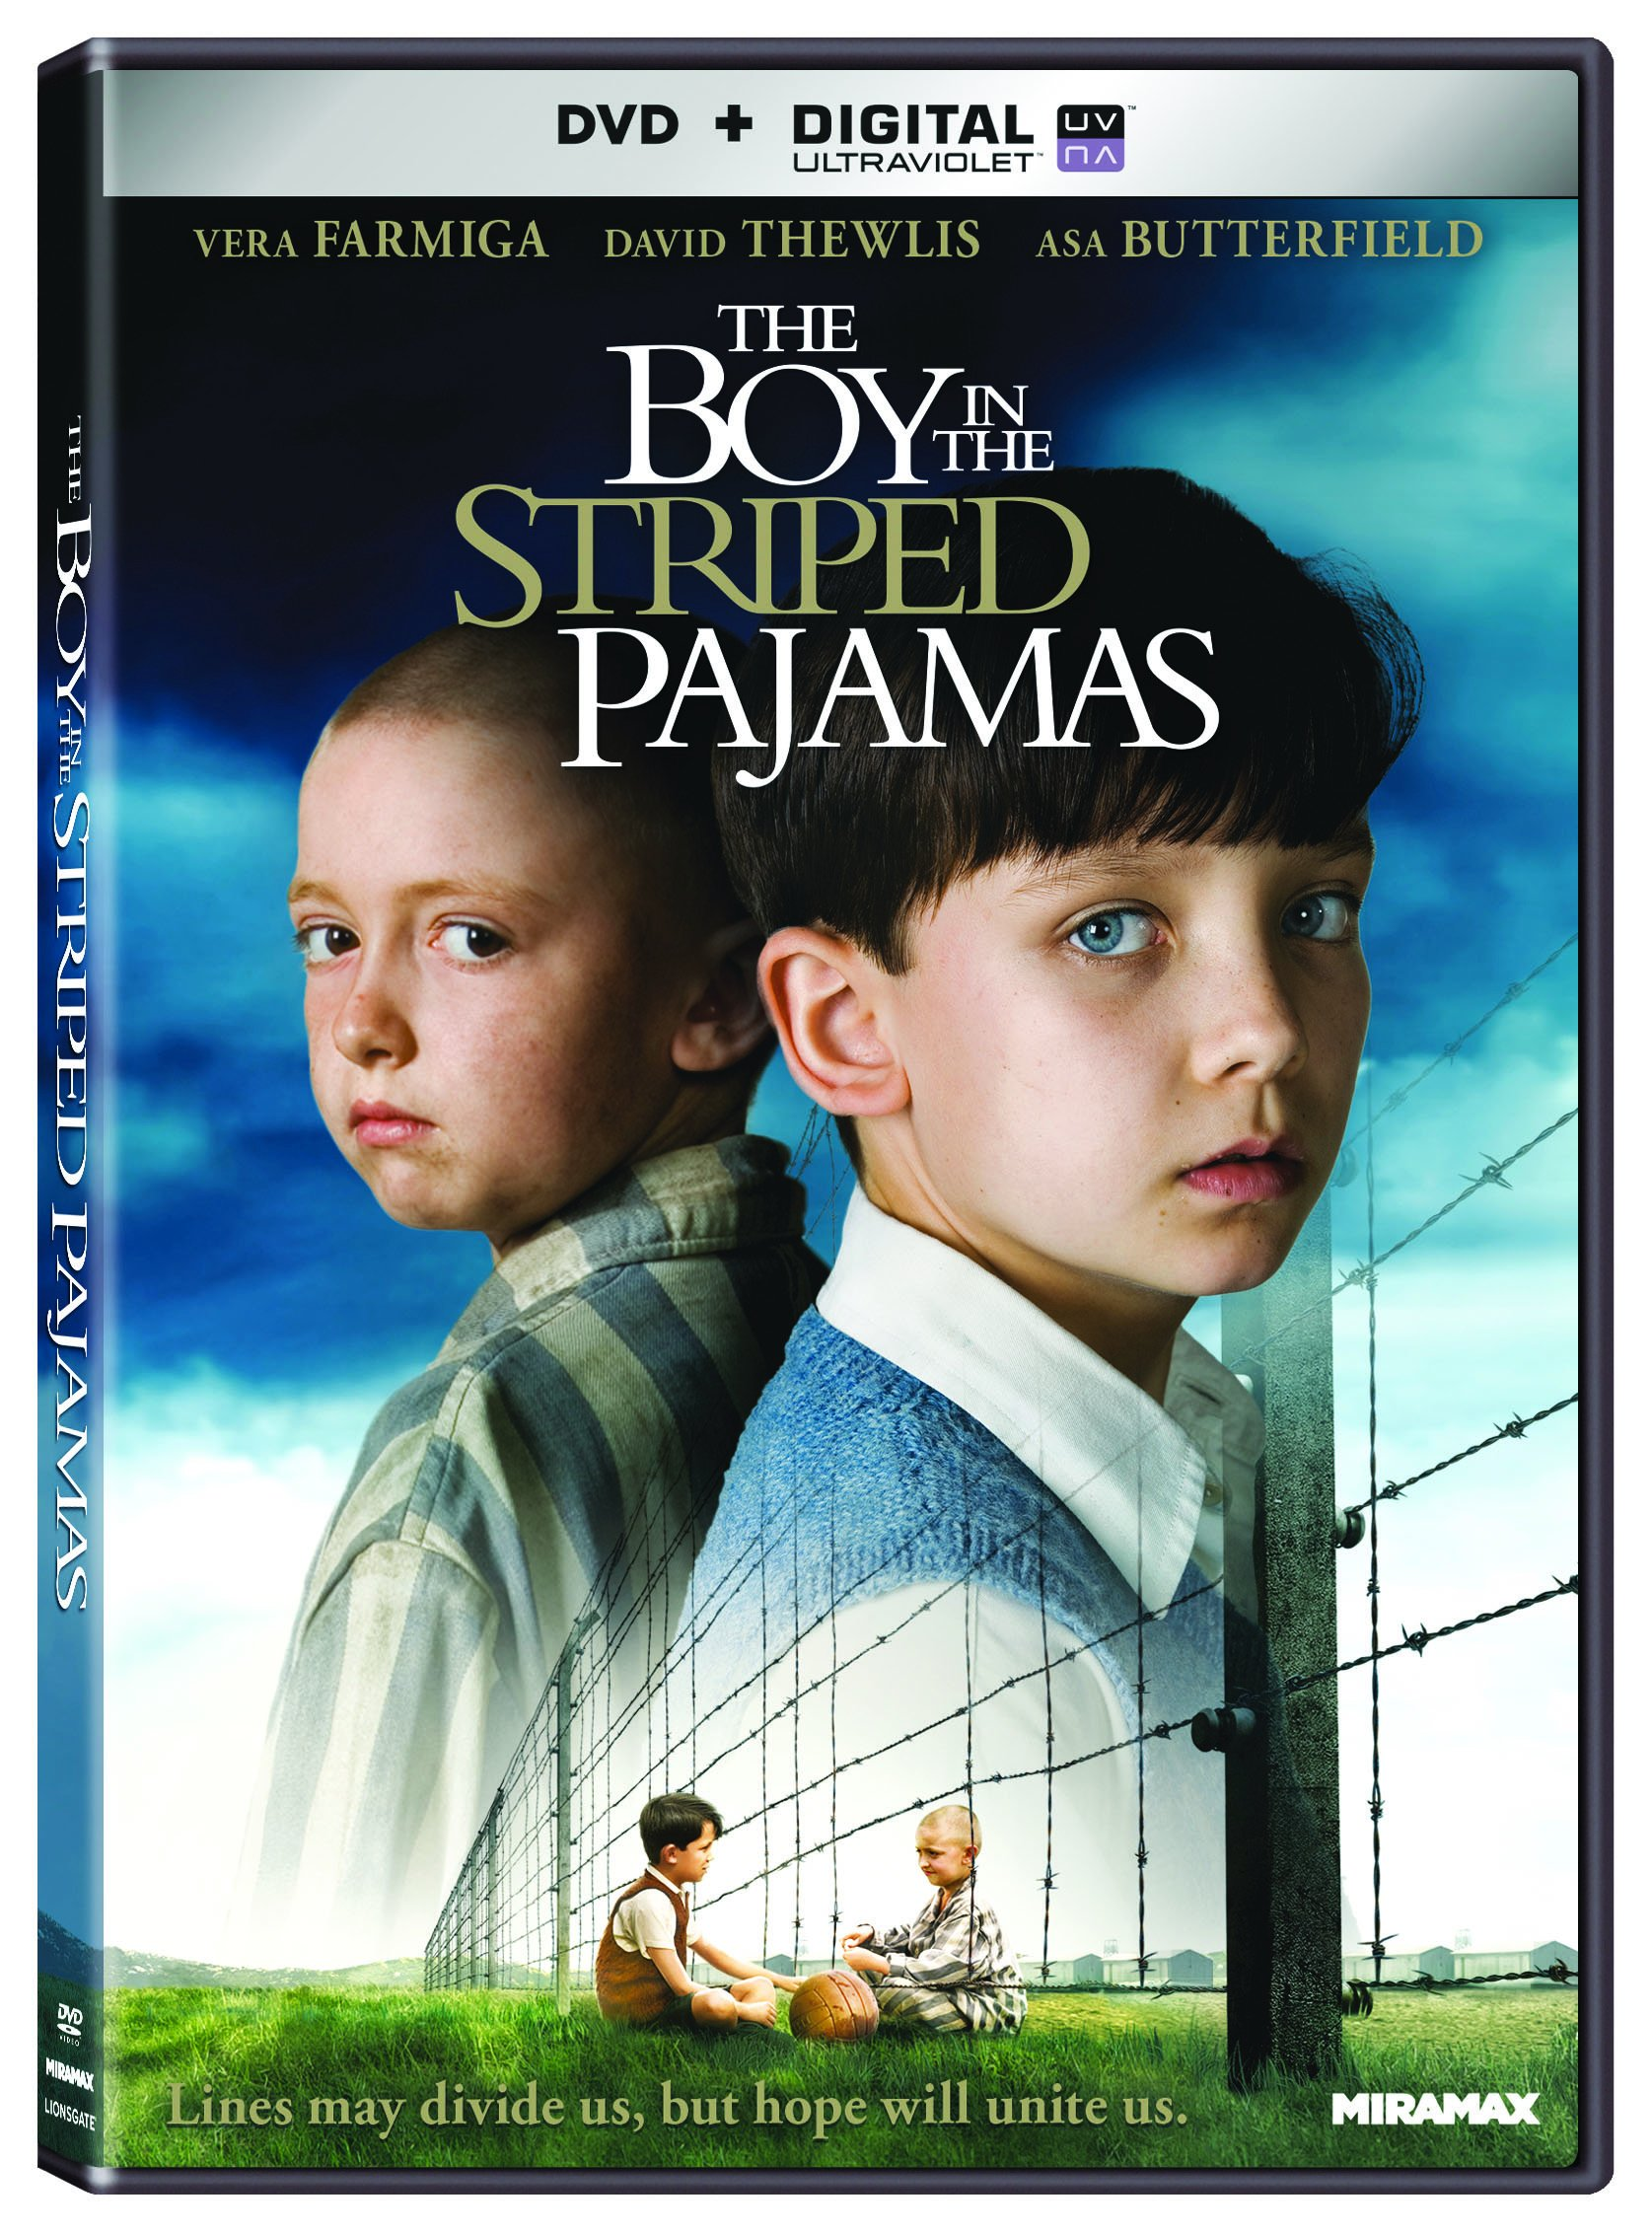 DVD : The Boy in the Striped Pajamas (Widescreen)